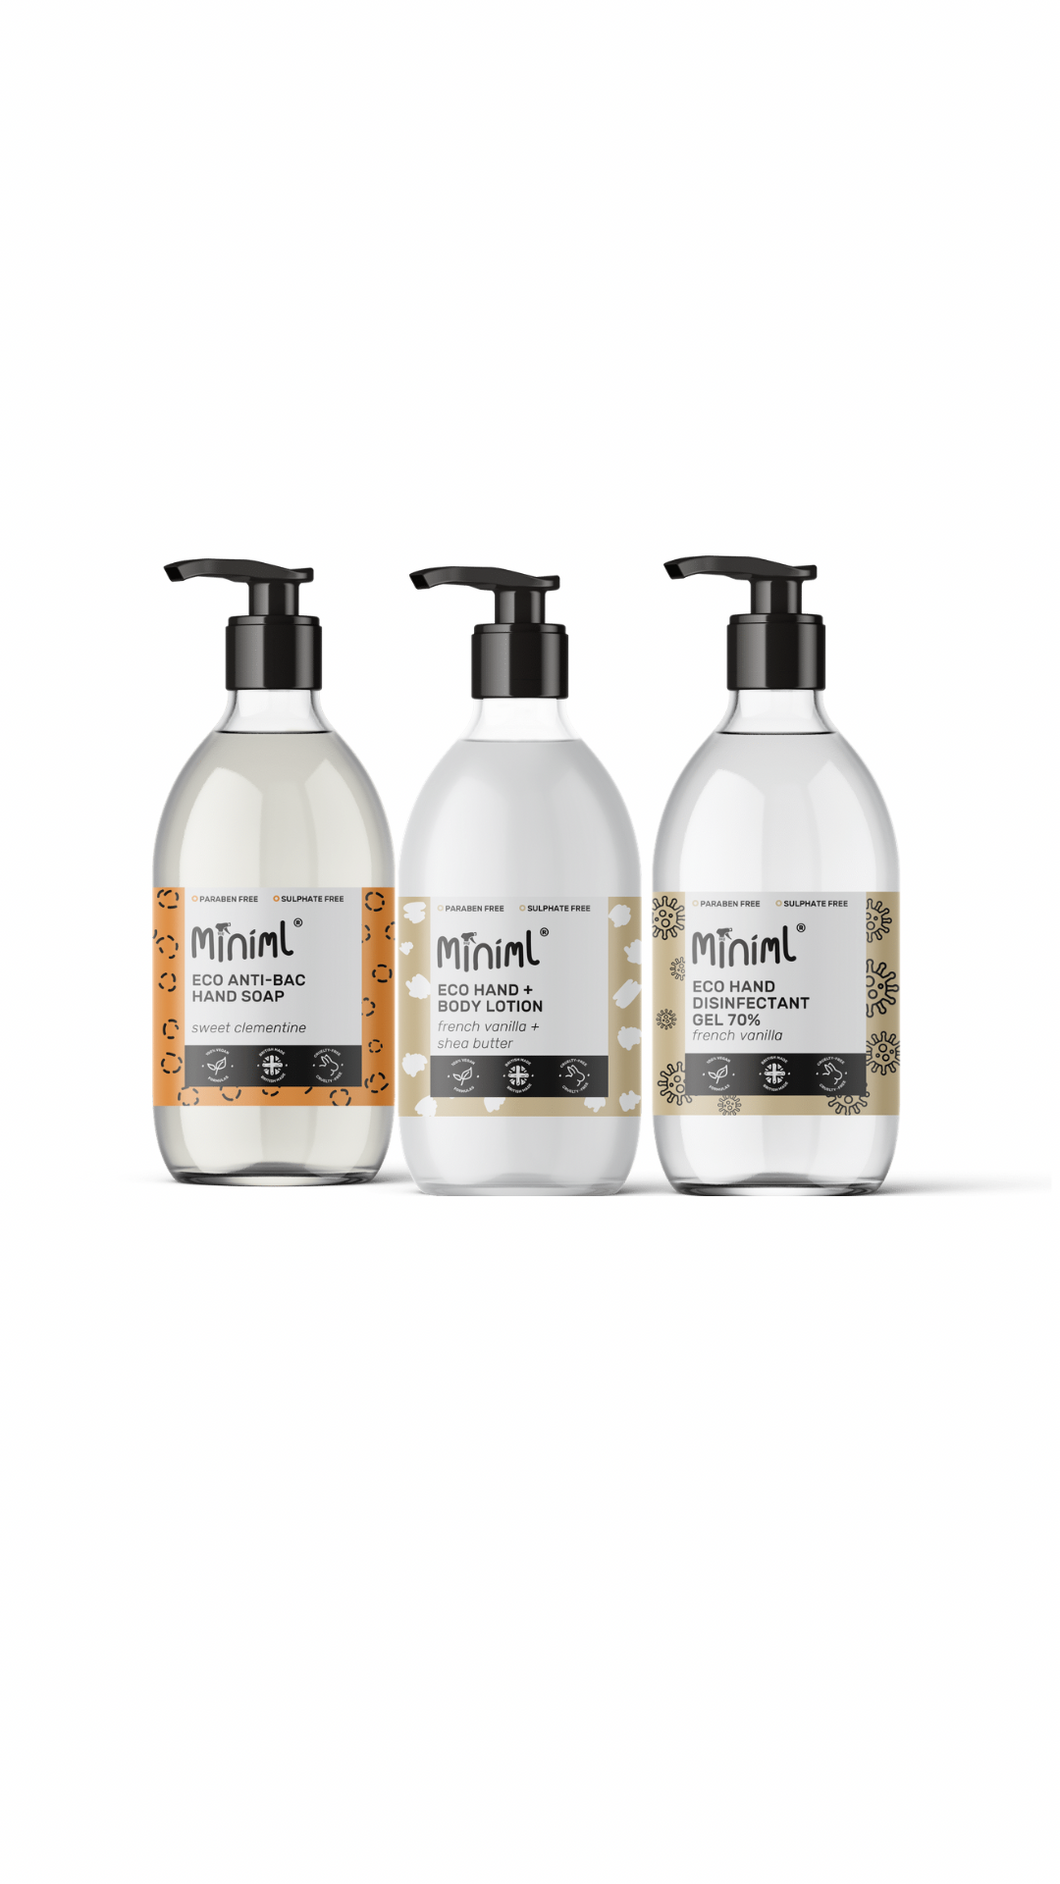 Miniml Eco Hand Collection